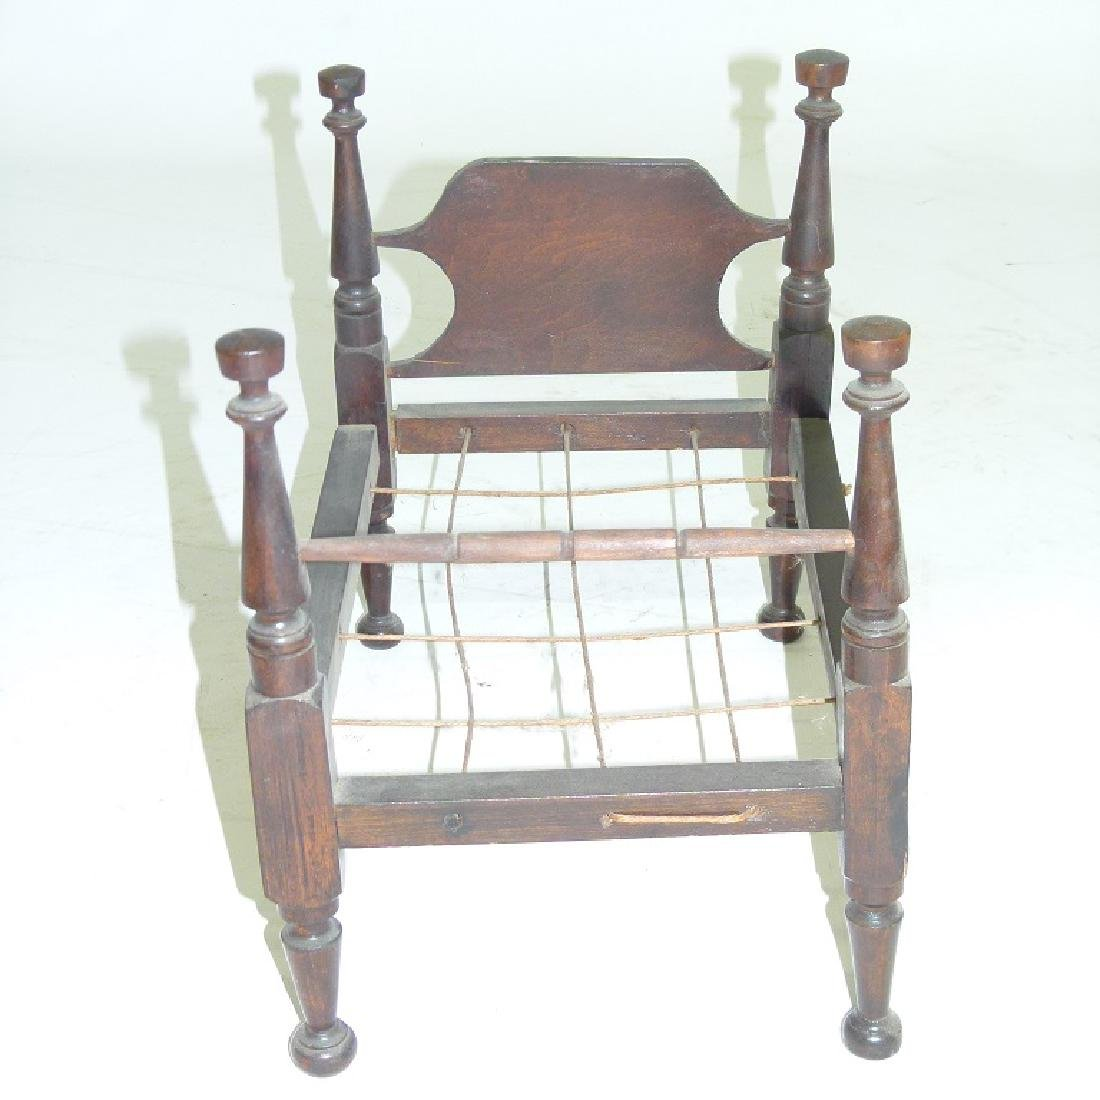 SHERATON CHERRY CHILDS DOLL BED, C. 1820/30